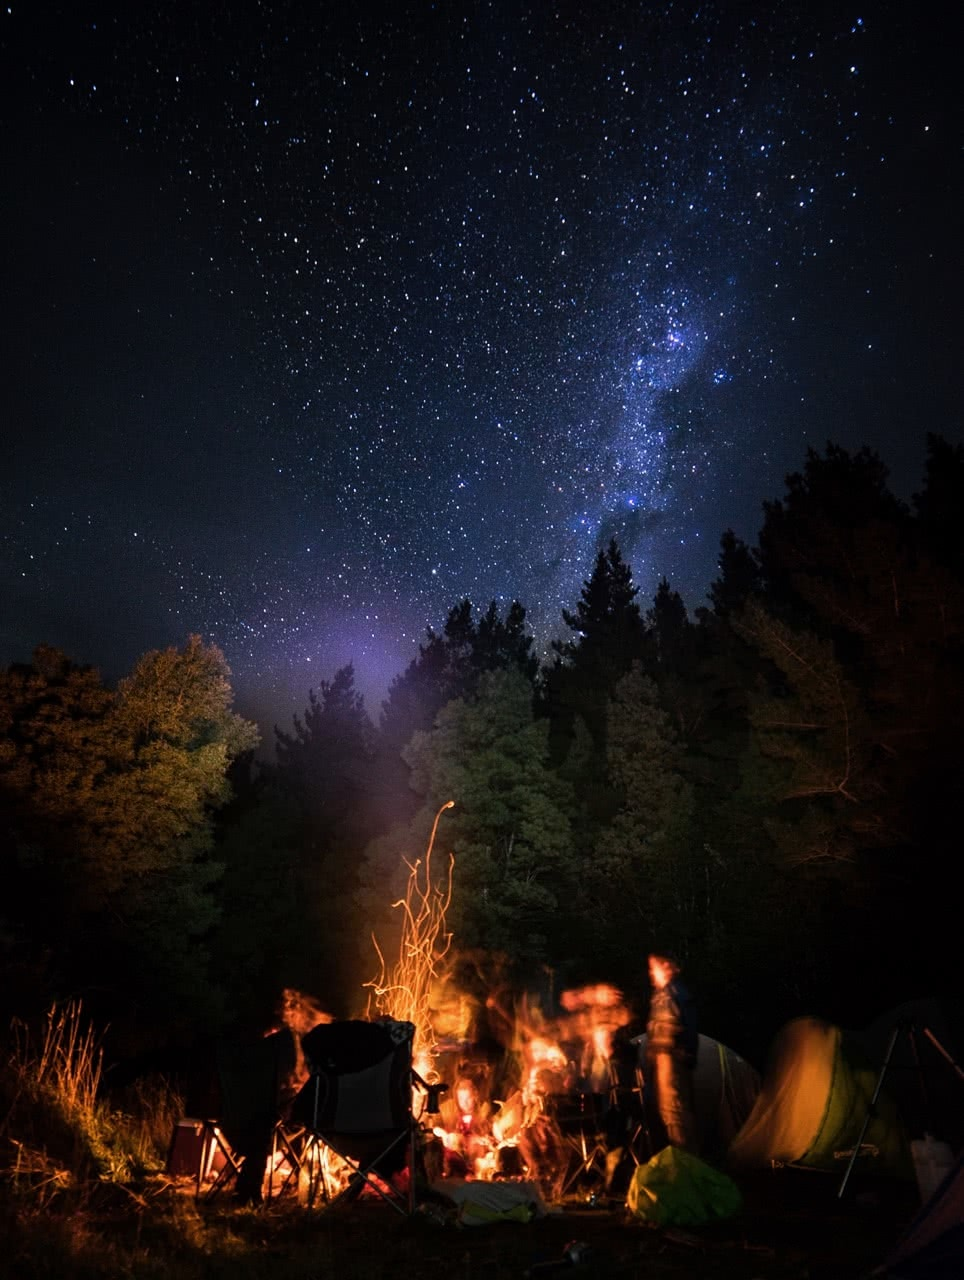 lachie thomas, explorer of the month, astrophotography, stars, hero, camping, fire